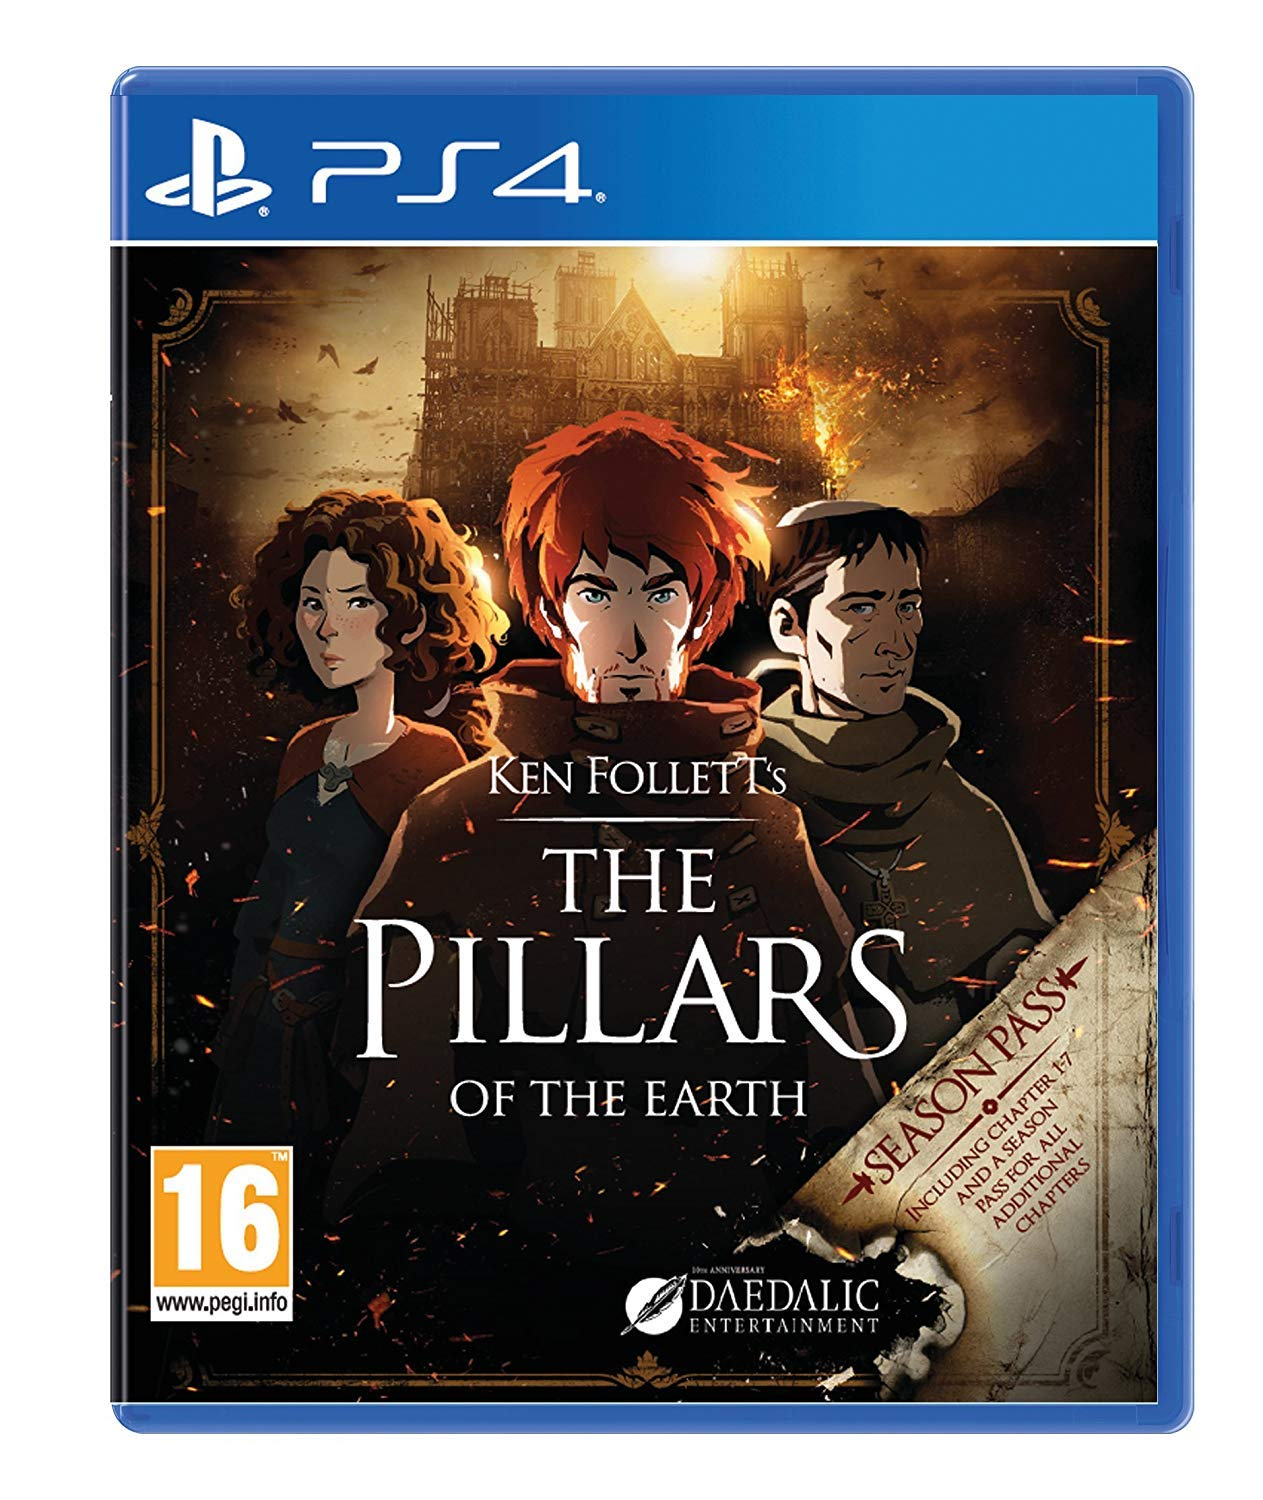 Giochi per Console Kalypso Ken Follett's The Pillars of the Earth